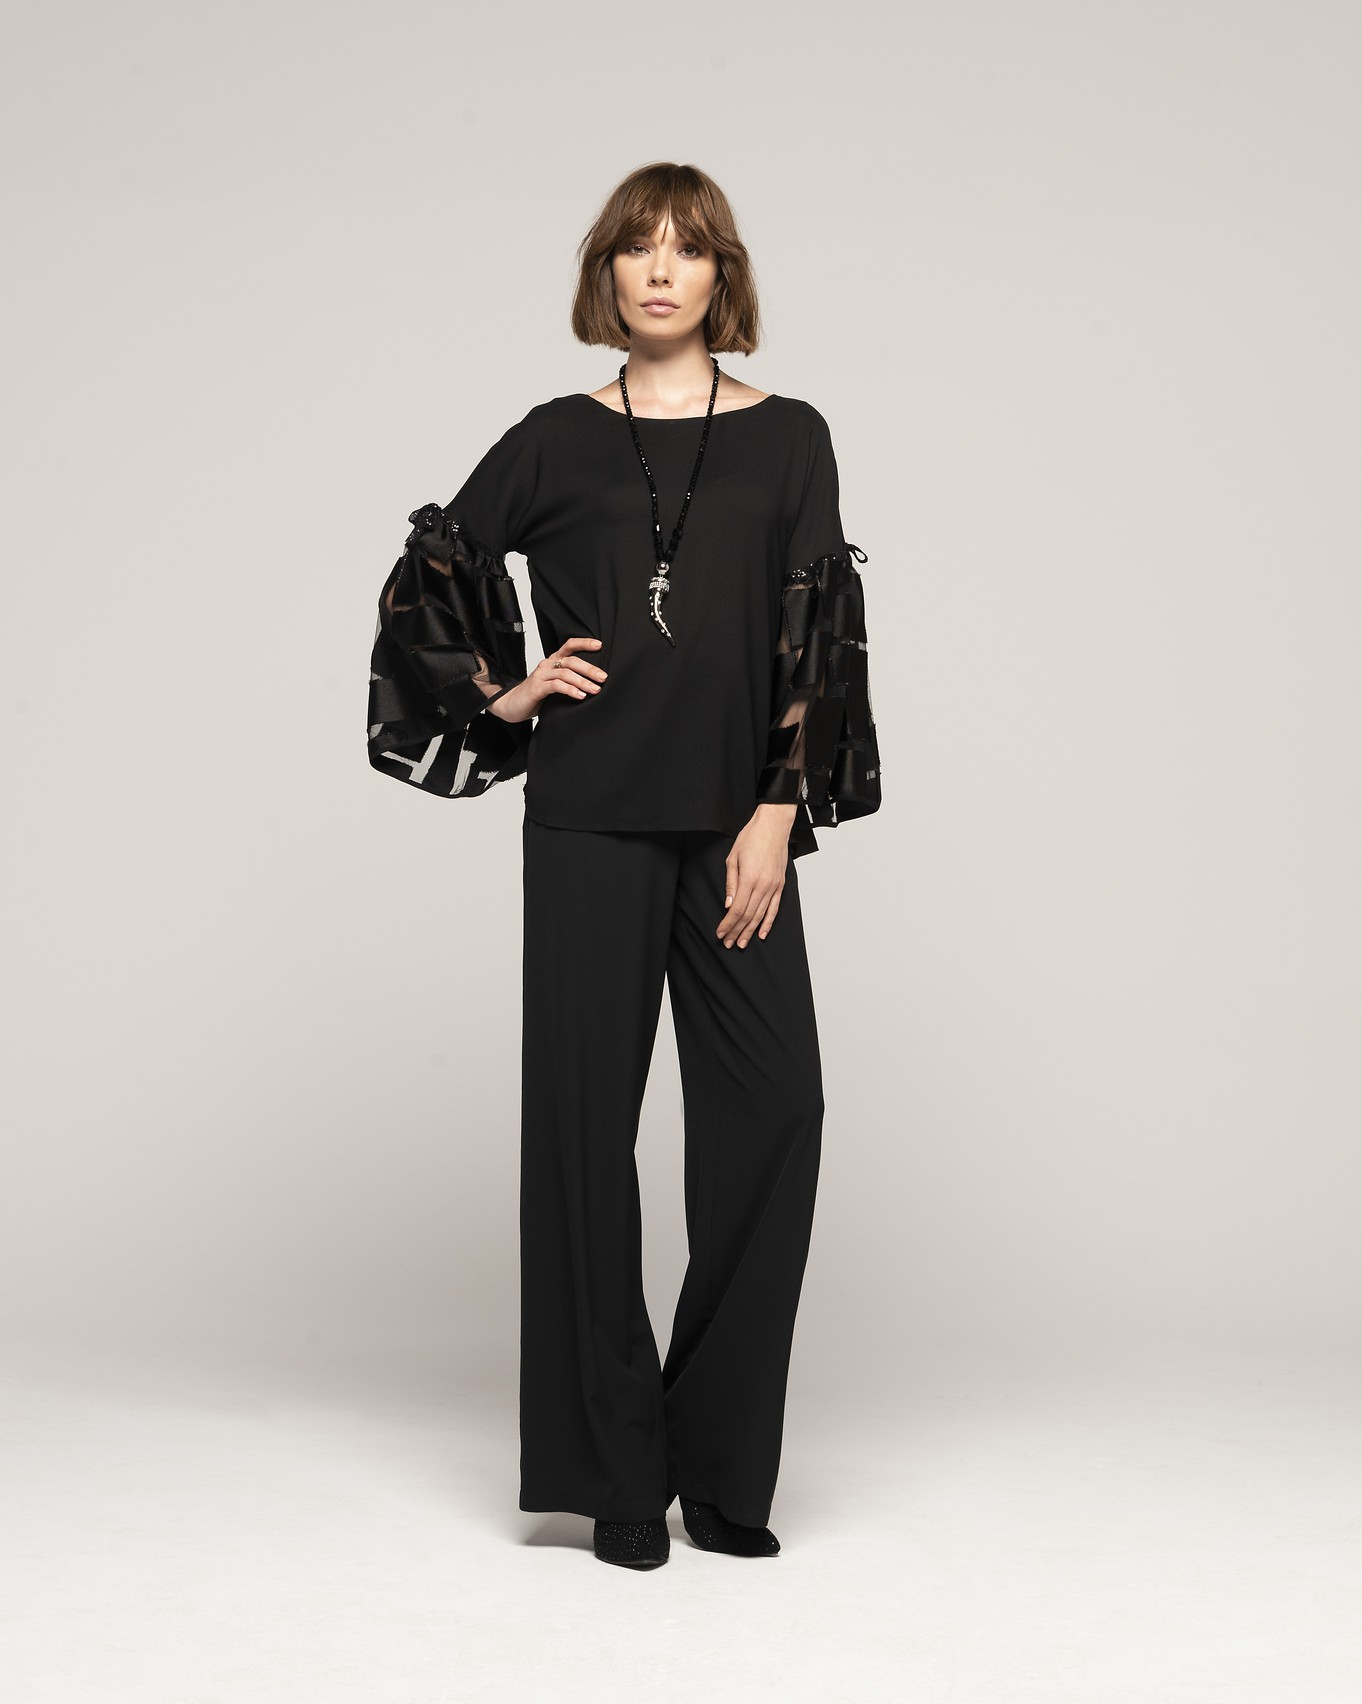 BLOUSE 216 - TROUSERS 146 - NECKLACE C352.jpg